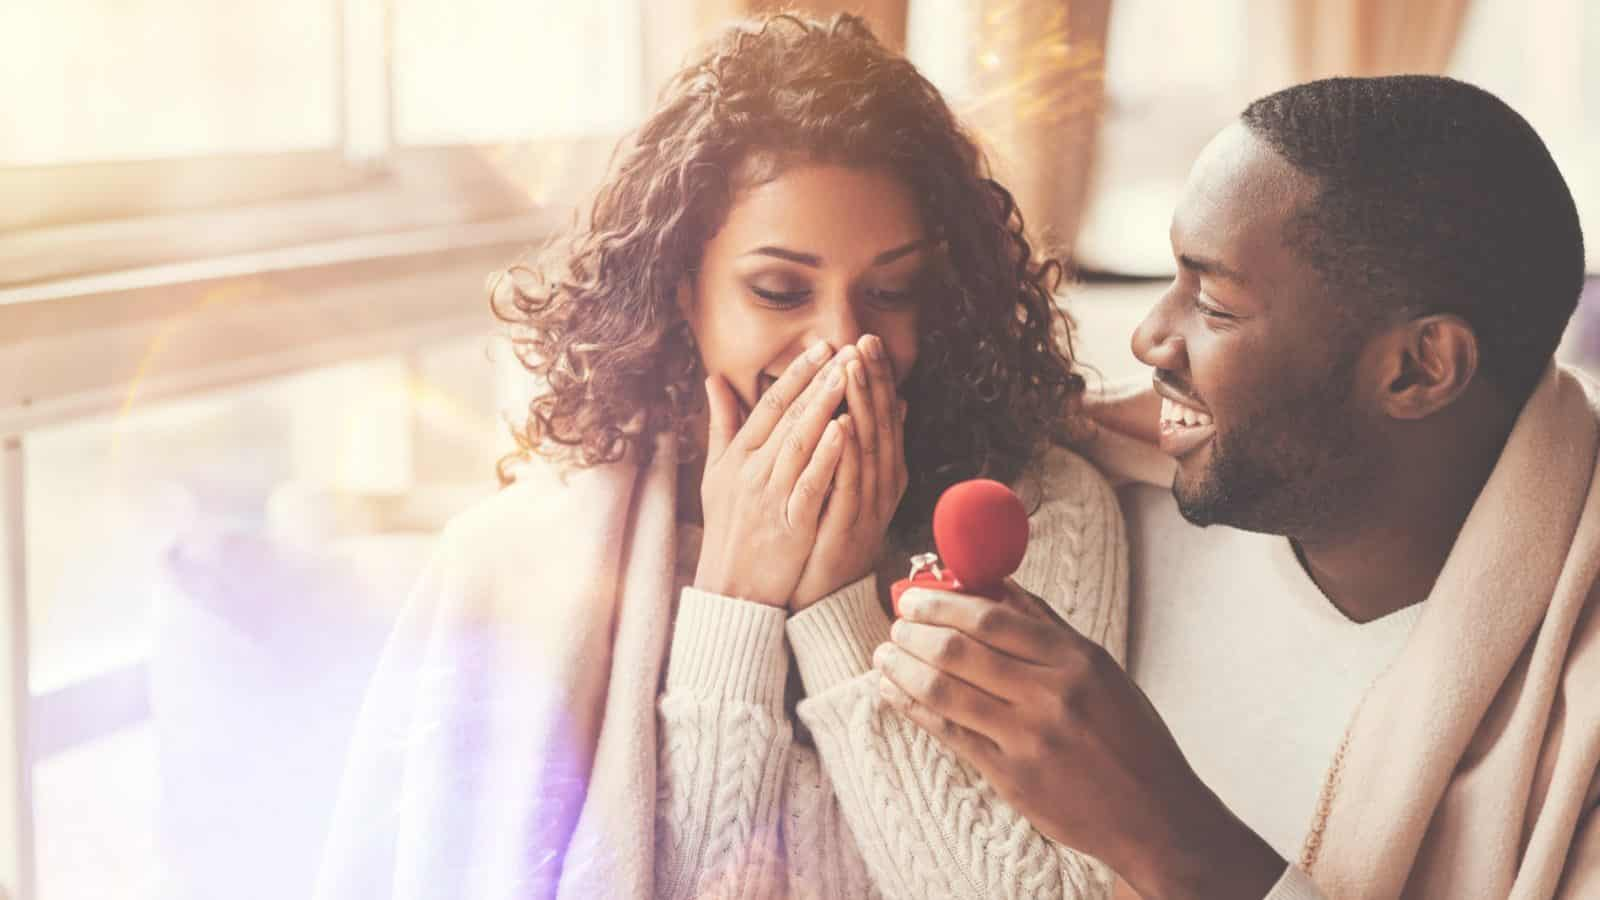 How to know he wants a relationship with you